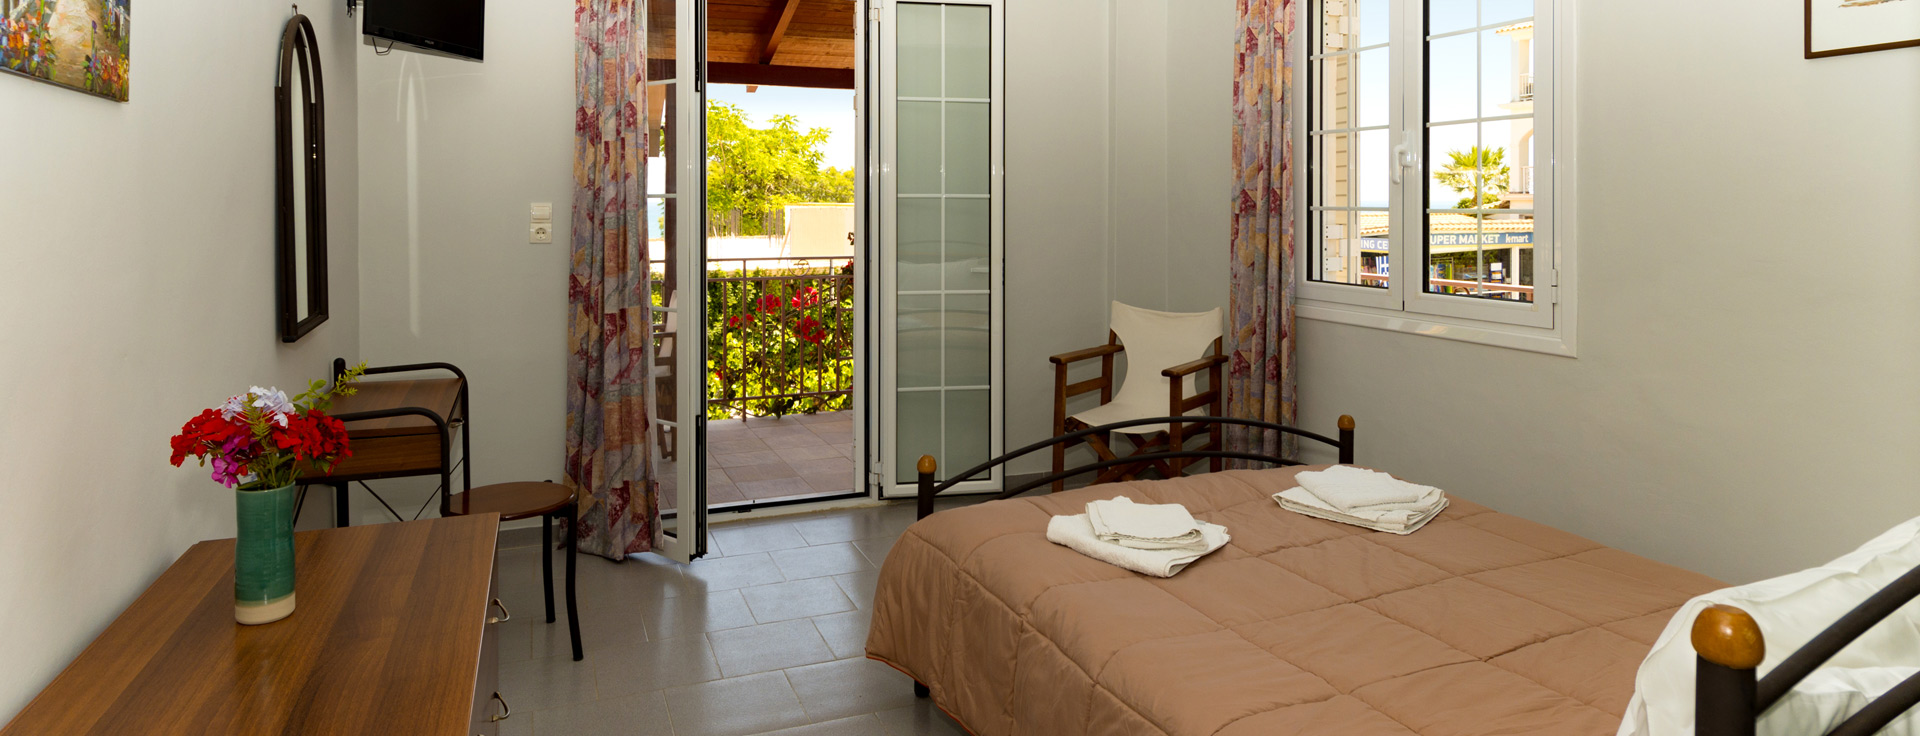 Double Room at Lemonia Accommodations, with sea view terrace